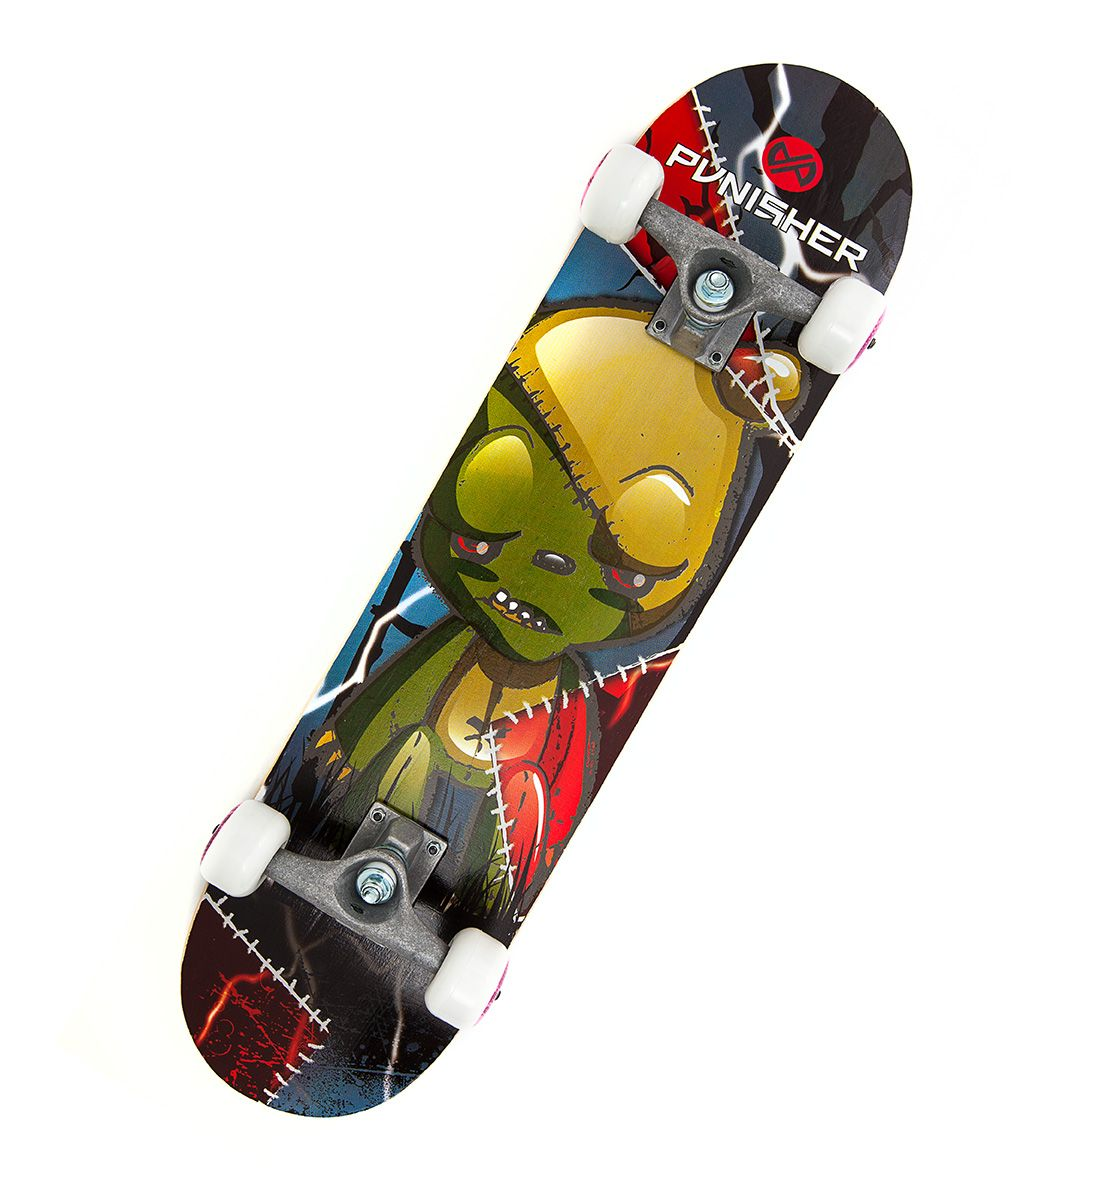 Punisher Skateboards Frankenbear 31-Inch